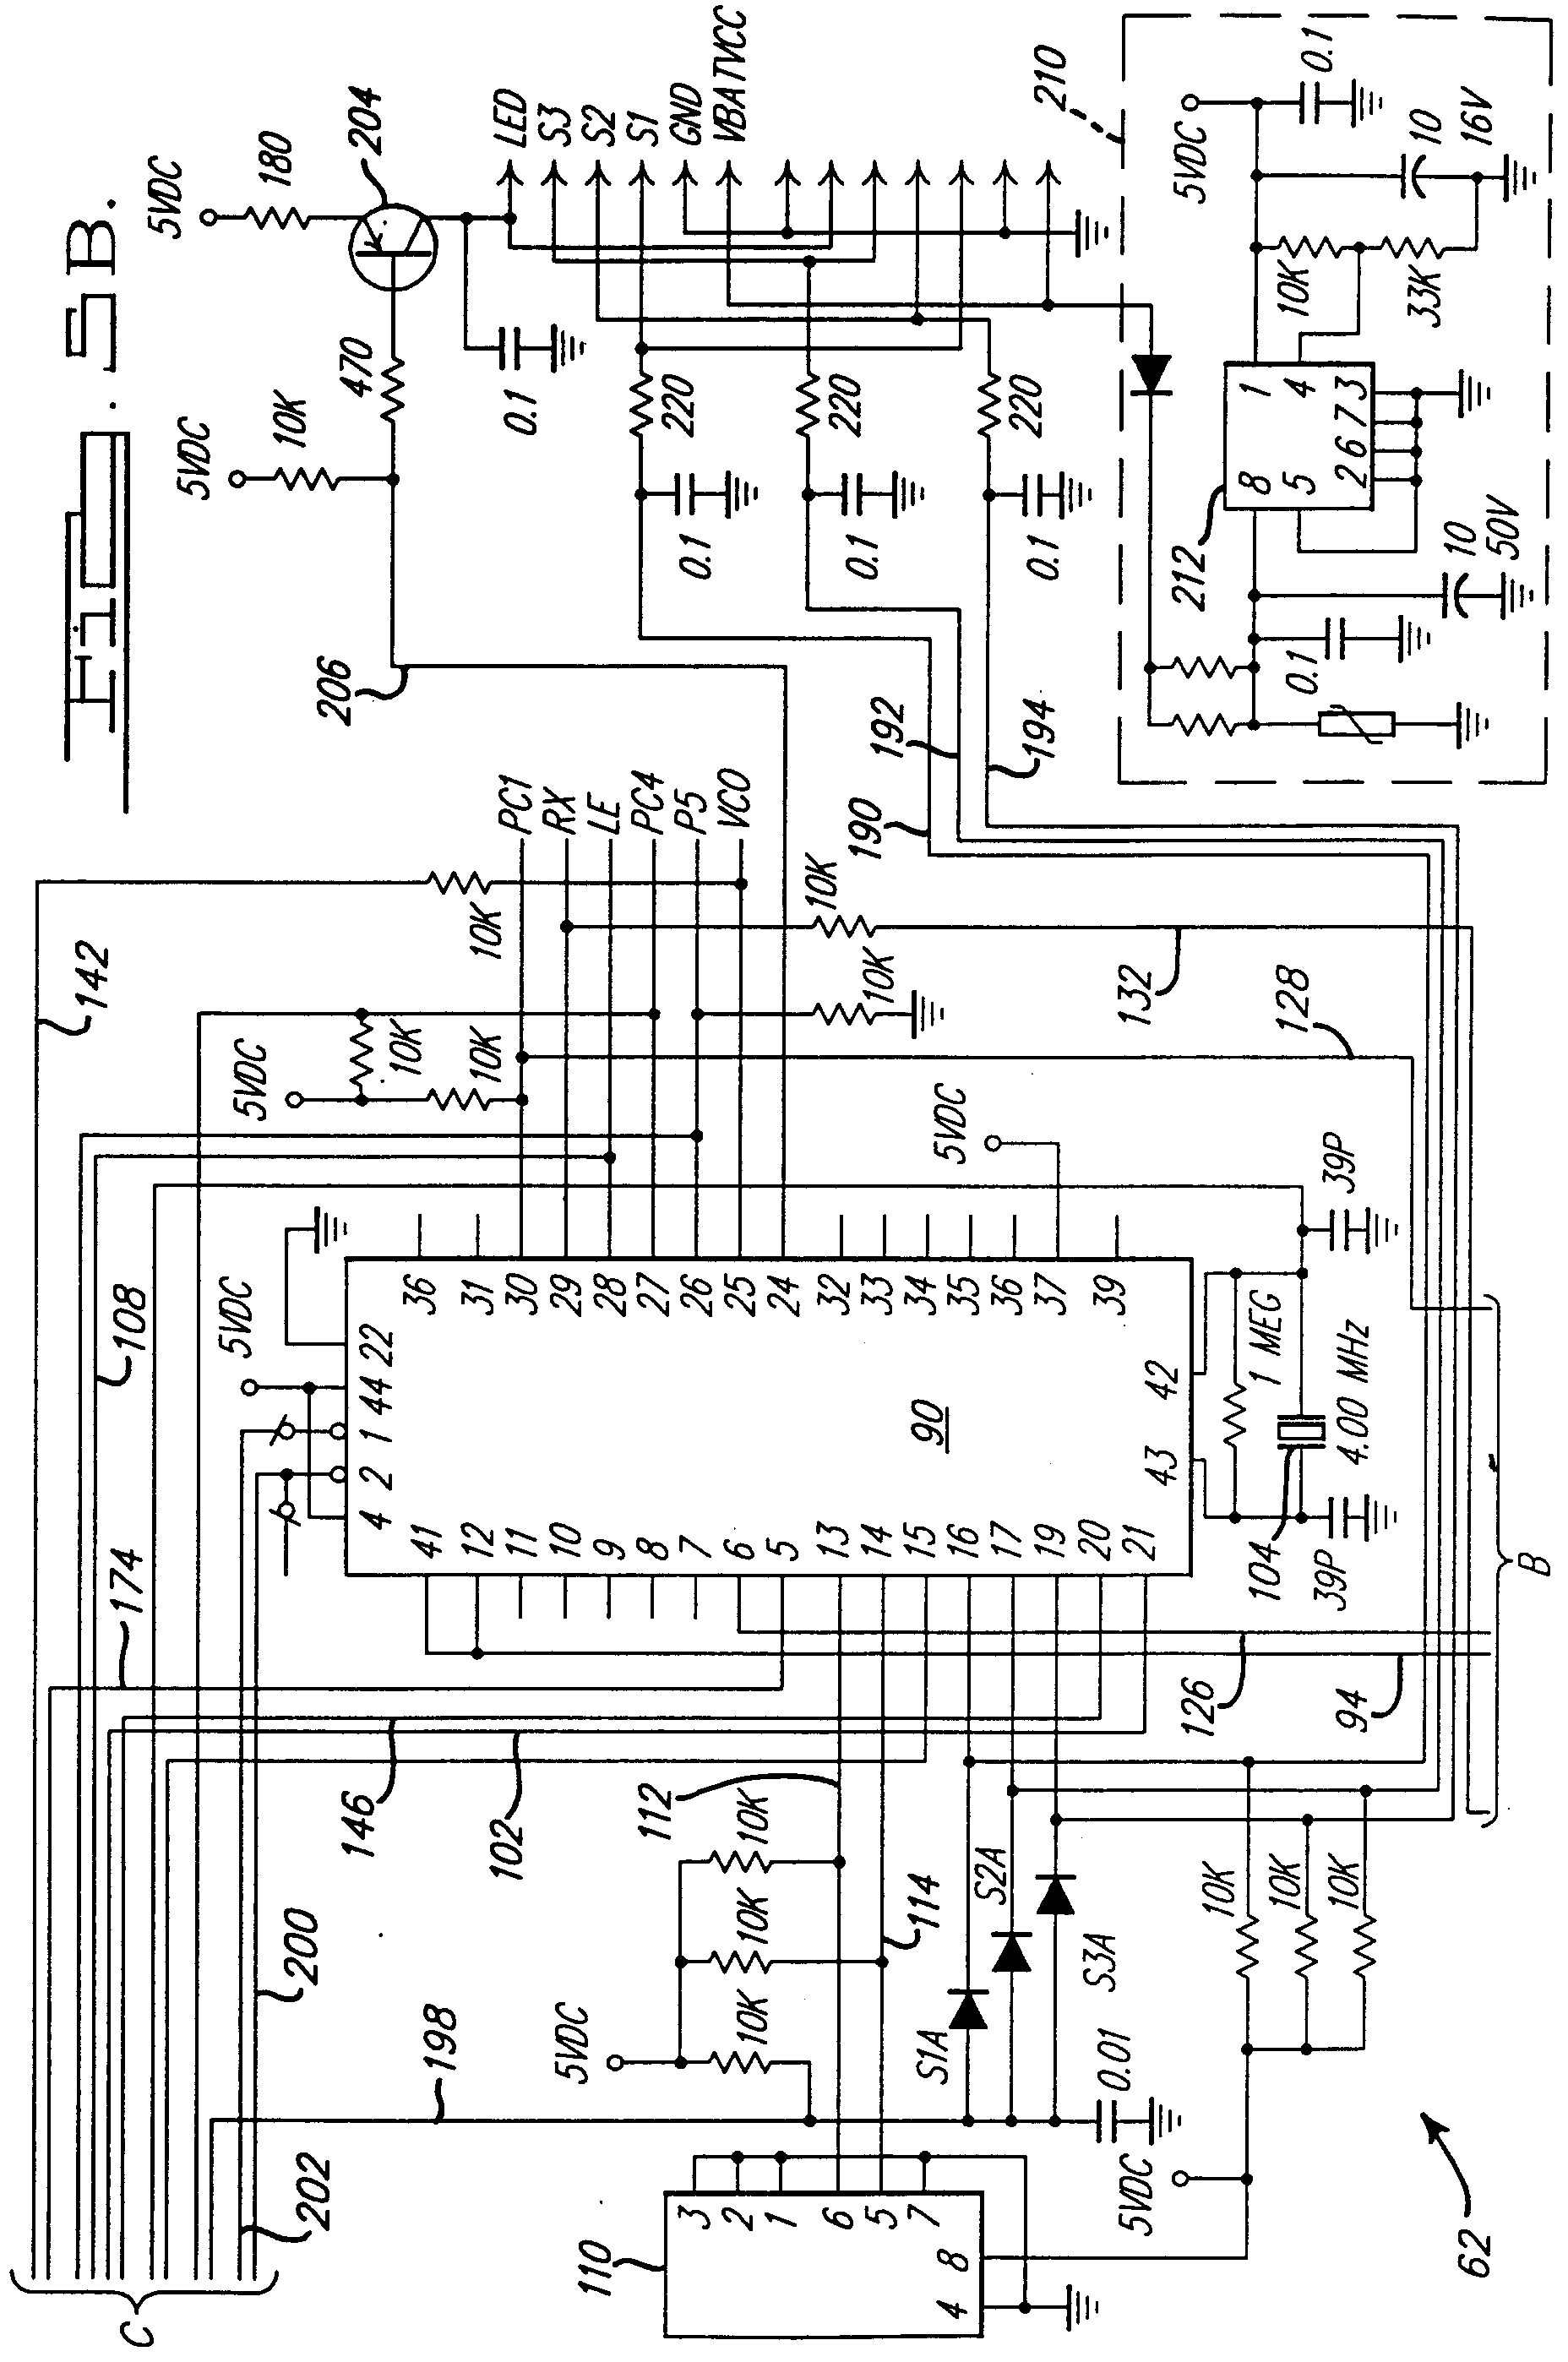 medium resolution of garage door opener circuit board schematic wiring diagram auto genie garage door opener circuit board schematic